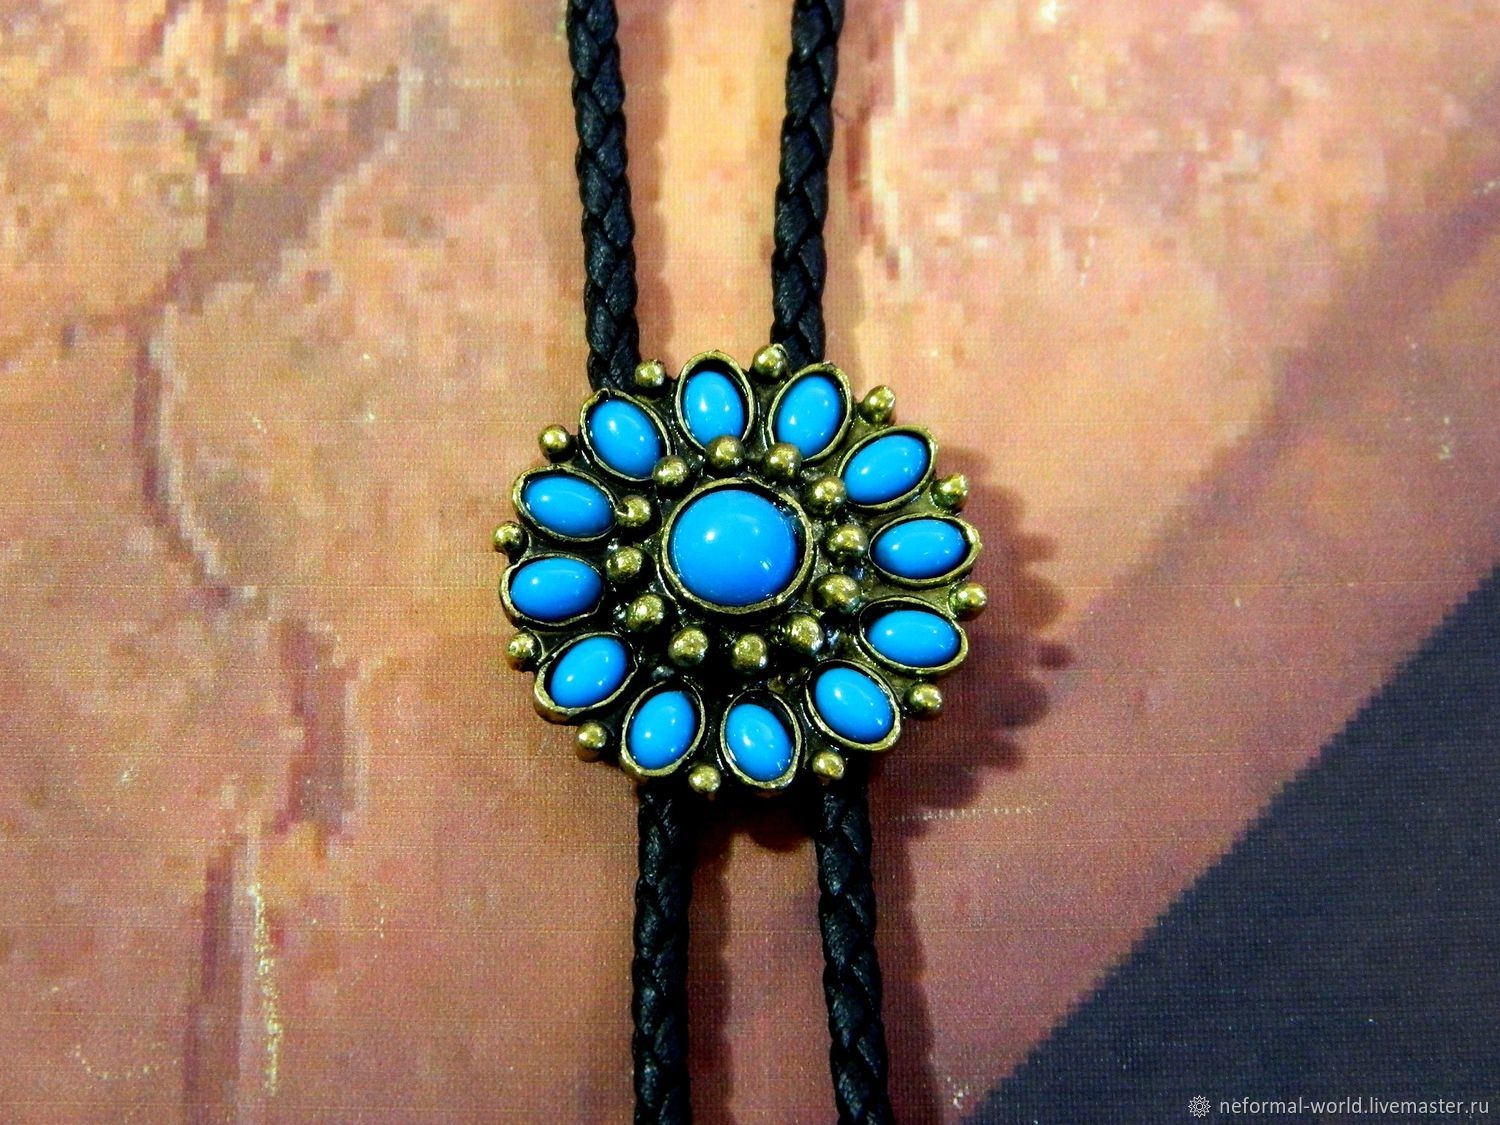 BOLO TIE WITH A BLUE STONE 'FLOWER BLUE' ˈ UNDER BRONZE, Ties, Saratov,  Фото №1